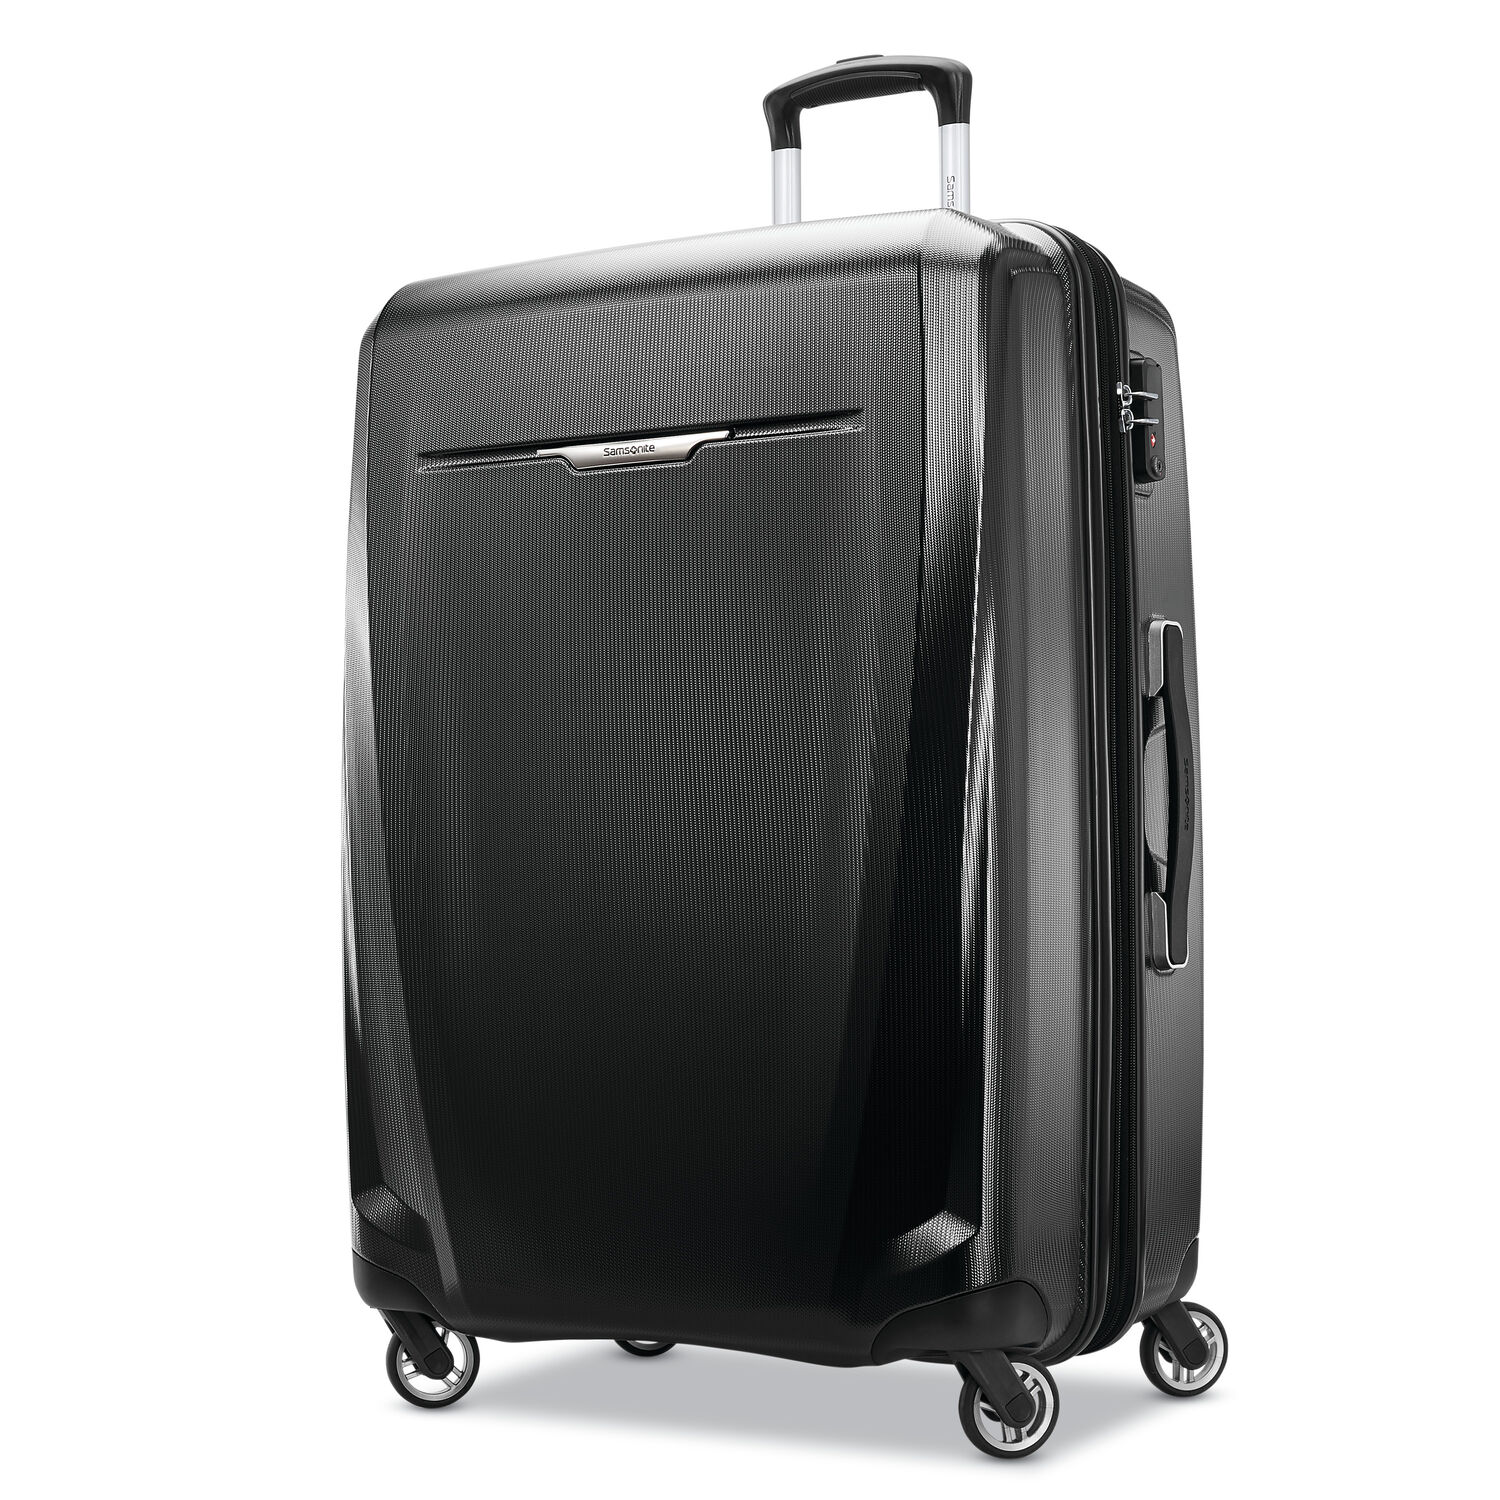 "Samsonite Winfield 3 DLX 28"" Spinner in the color Black."